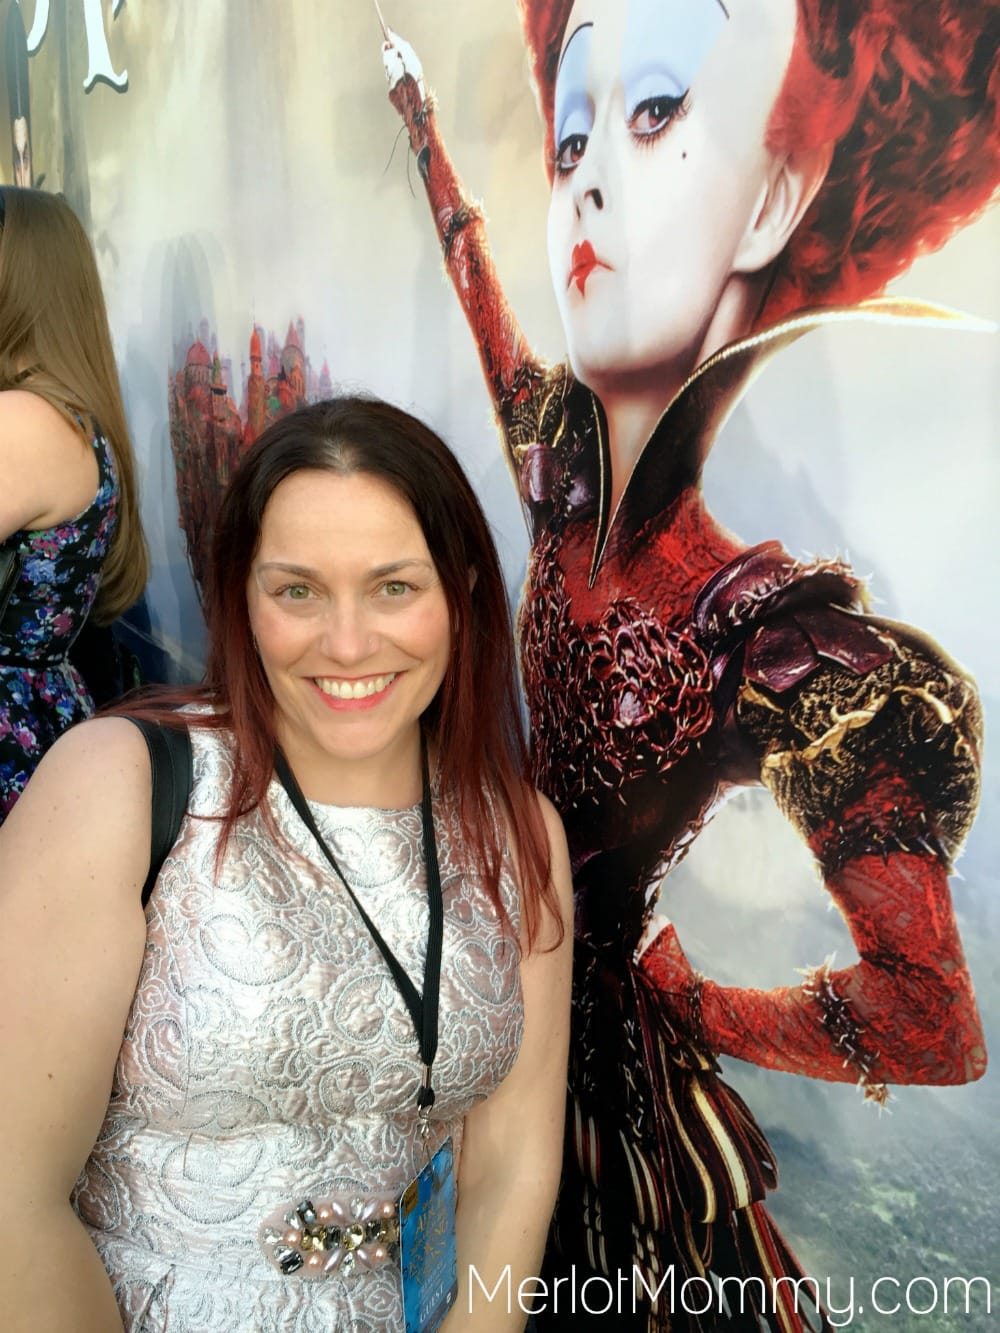 Behind-the-Scenes at the Alice Through the Looking Glass Red Carpet Premiere Event